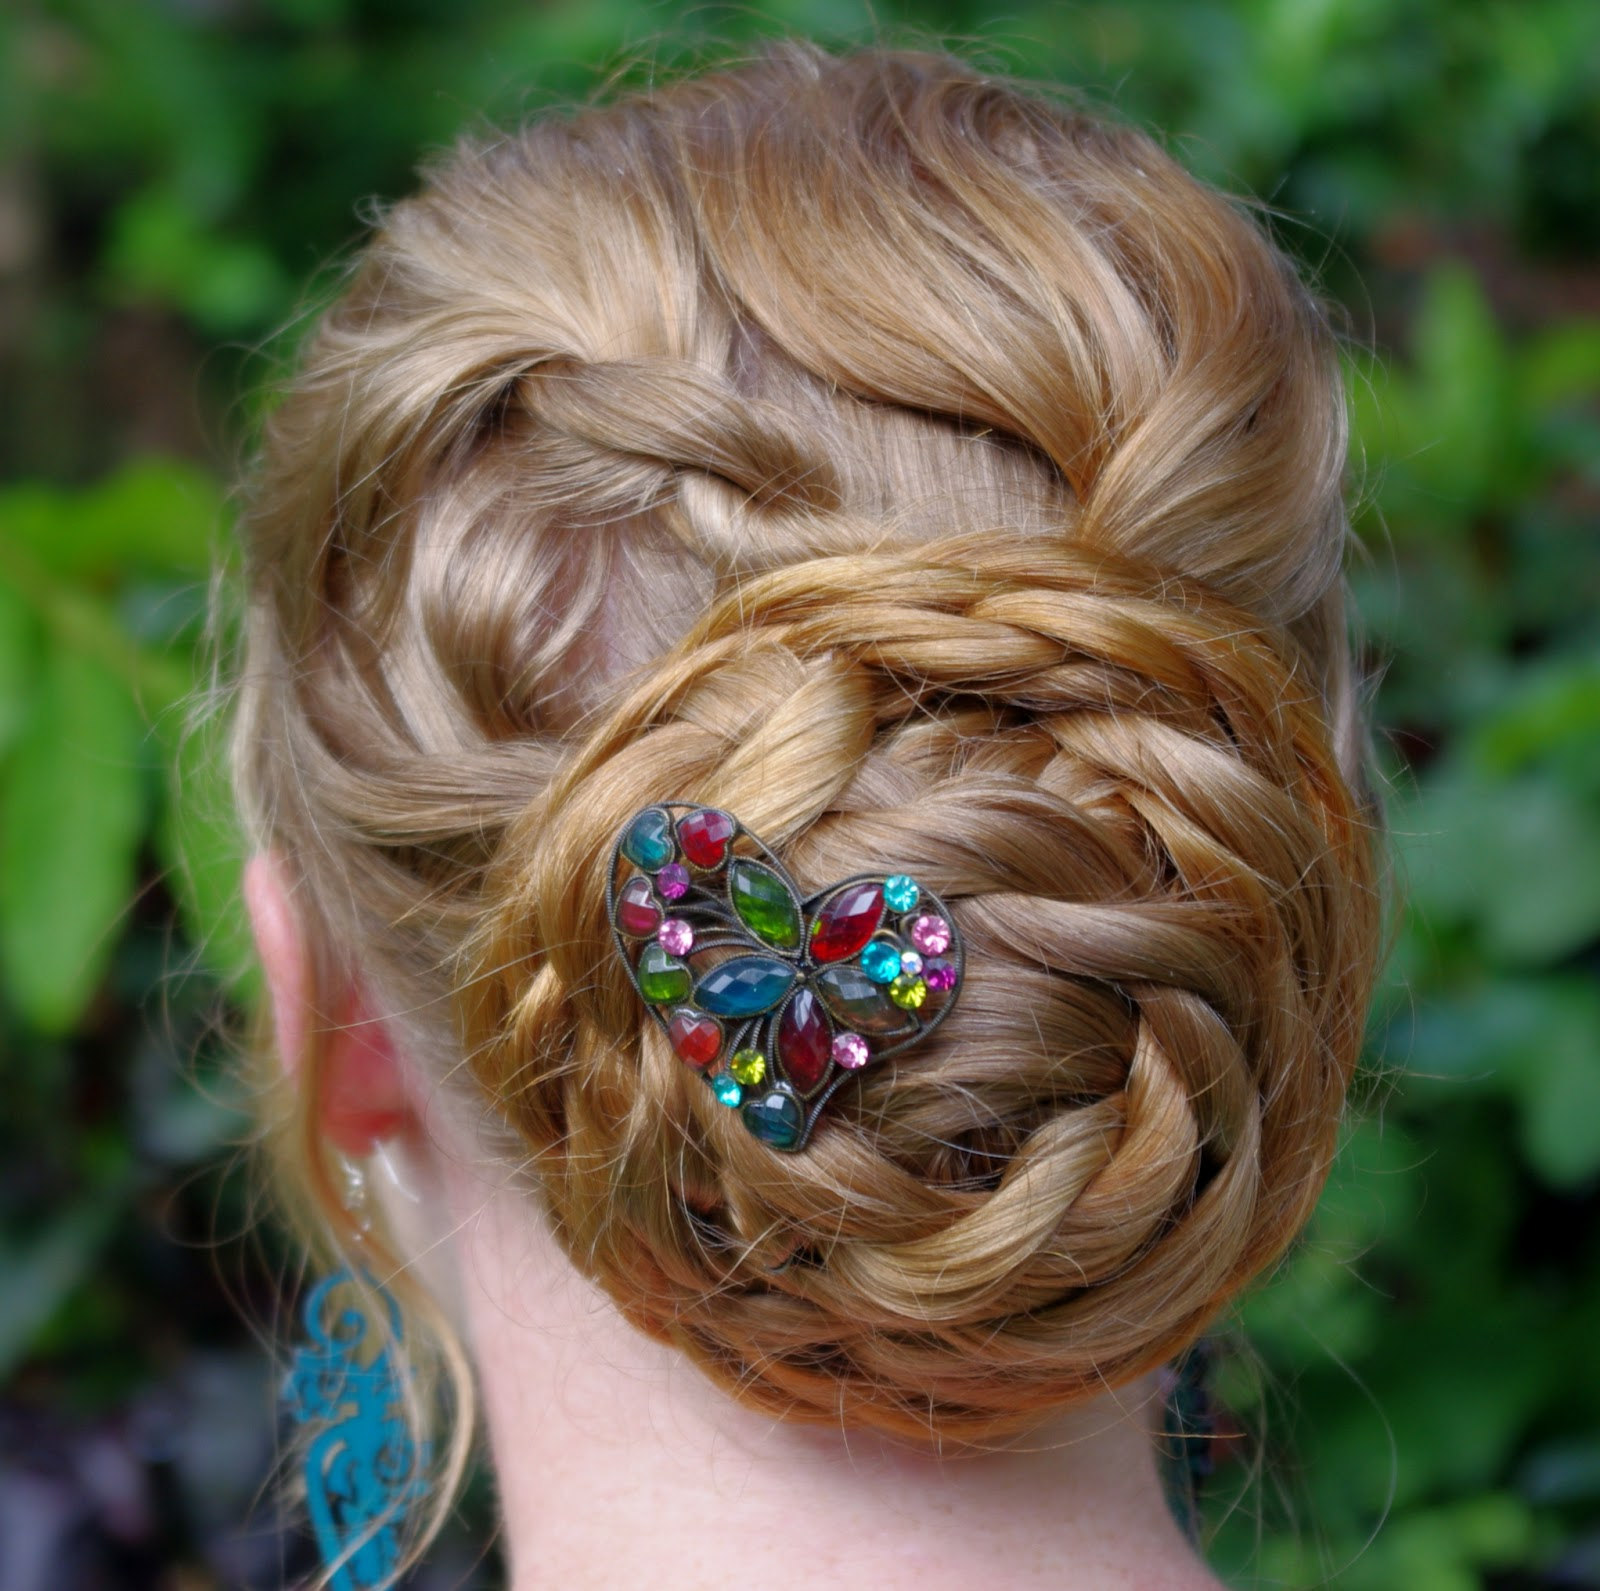 Well Known Rope And Braid Hairstyles Intended For Braids & Hairstyles For Super Long Hair: Rope Braid Bun (View 8 of 20)